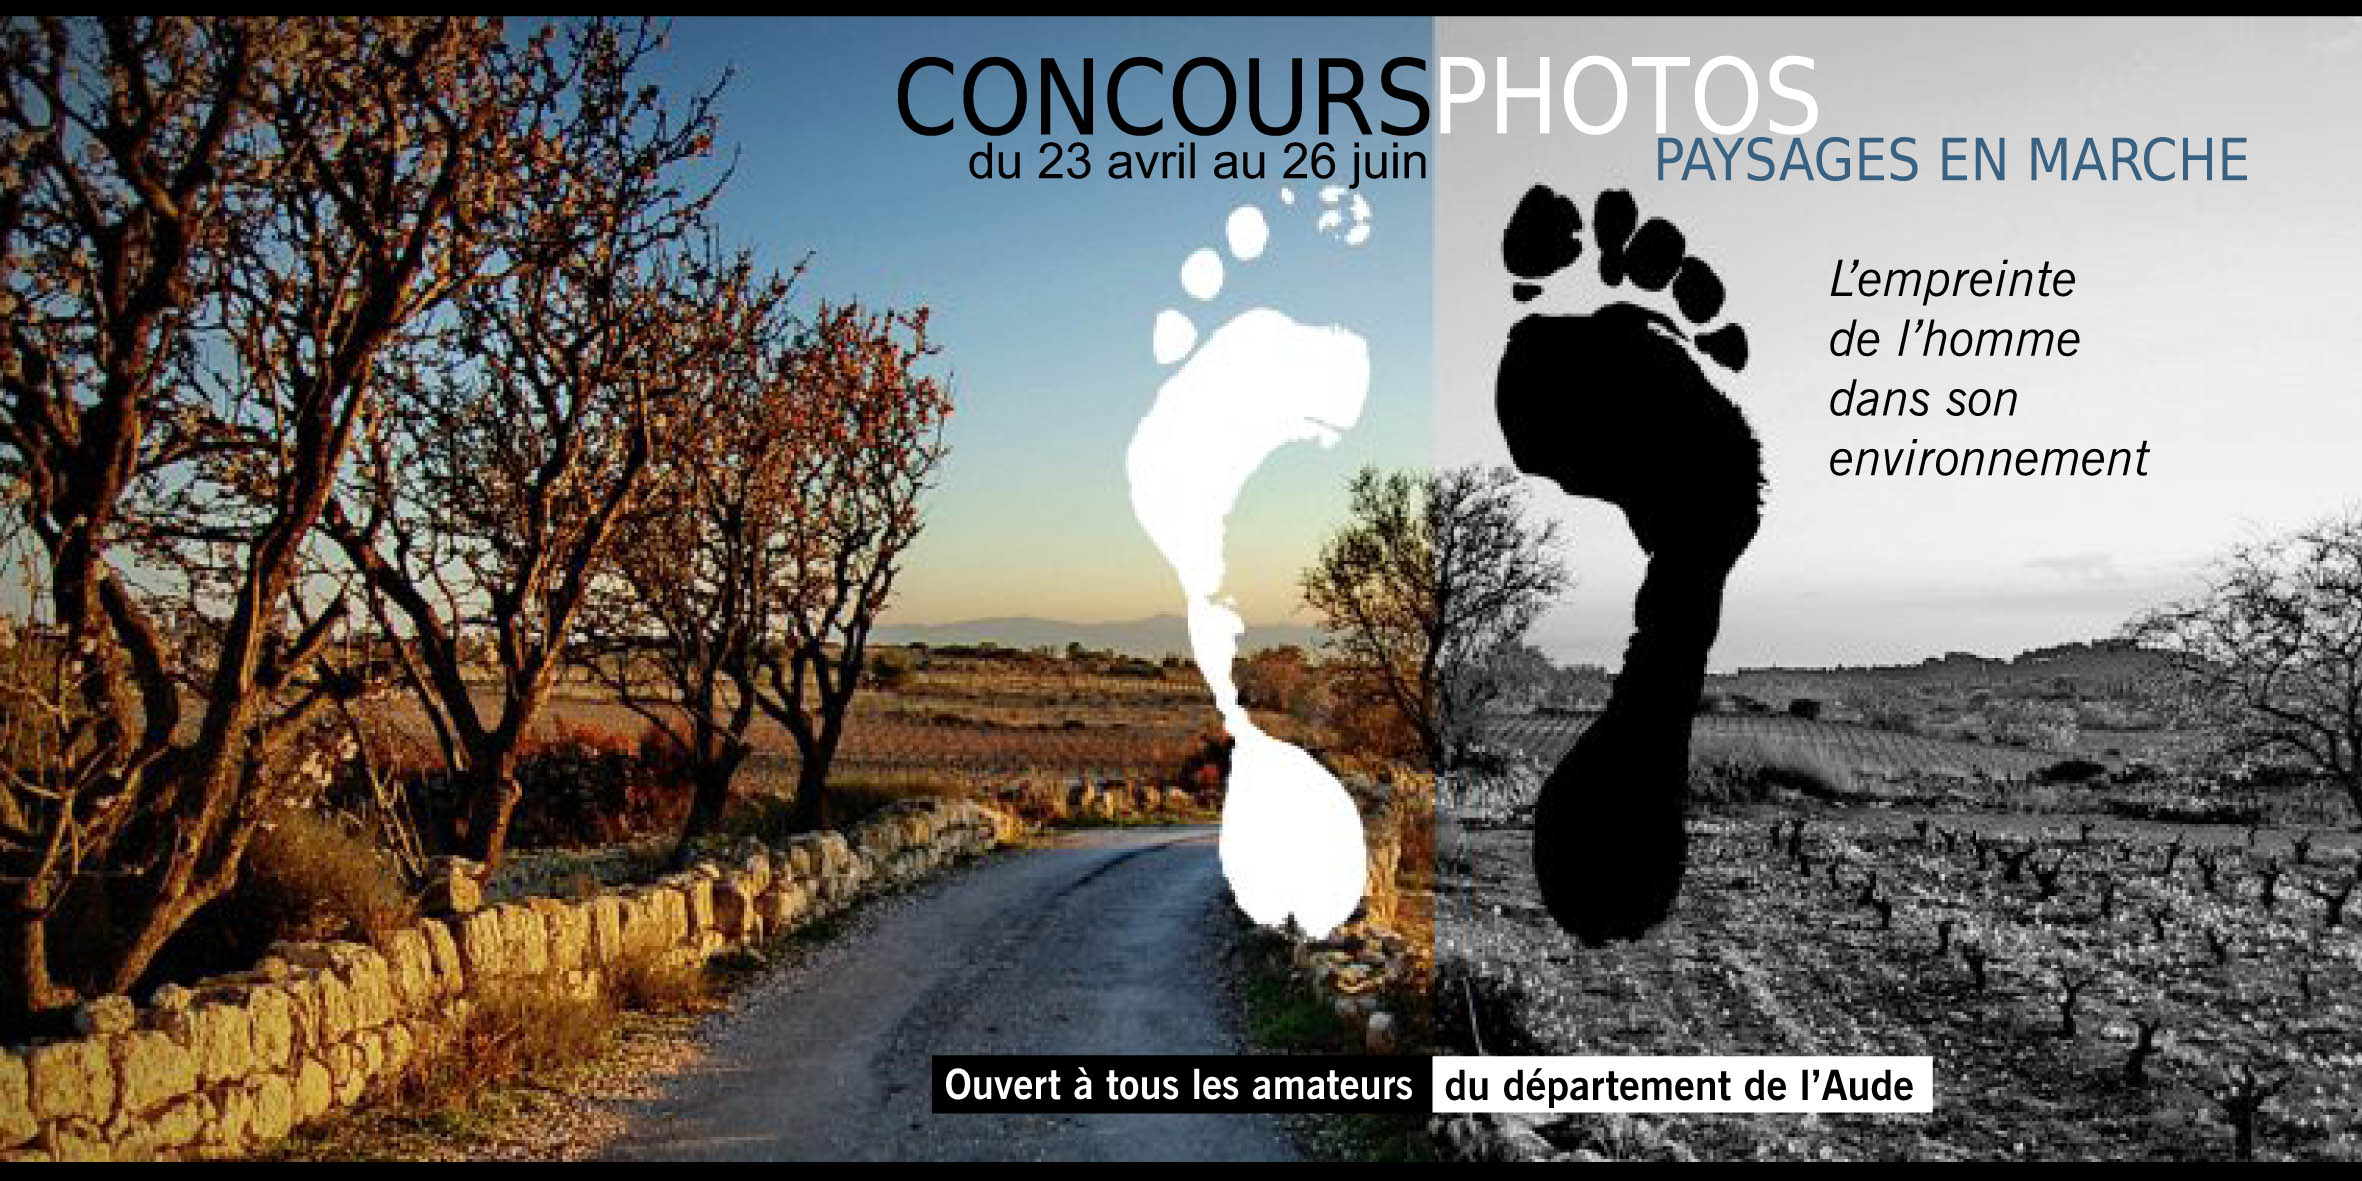 Fly_concours_10X20_V01.cdr